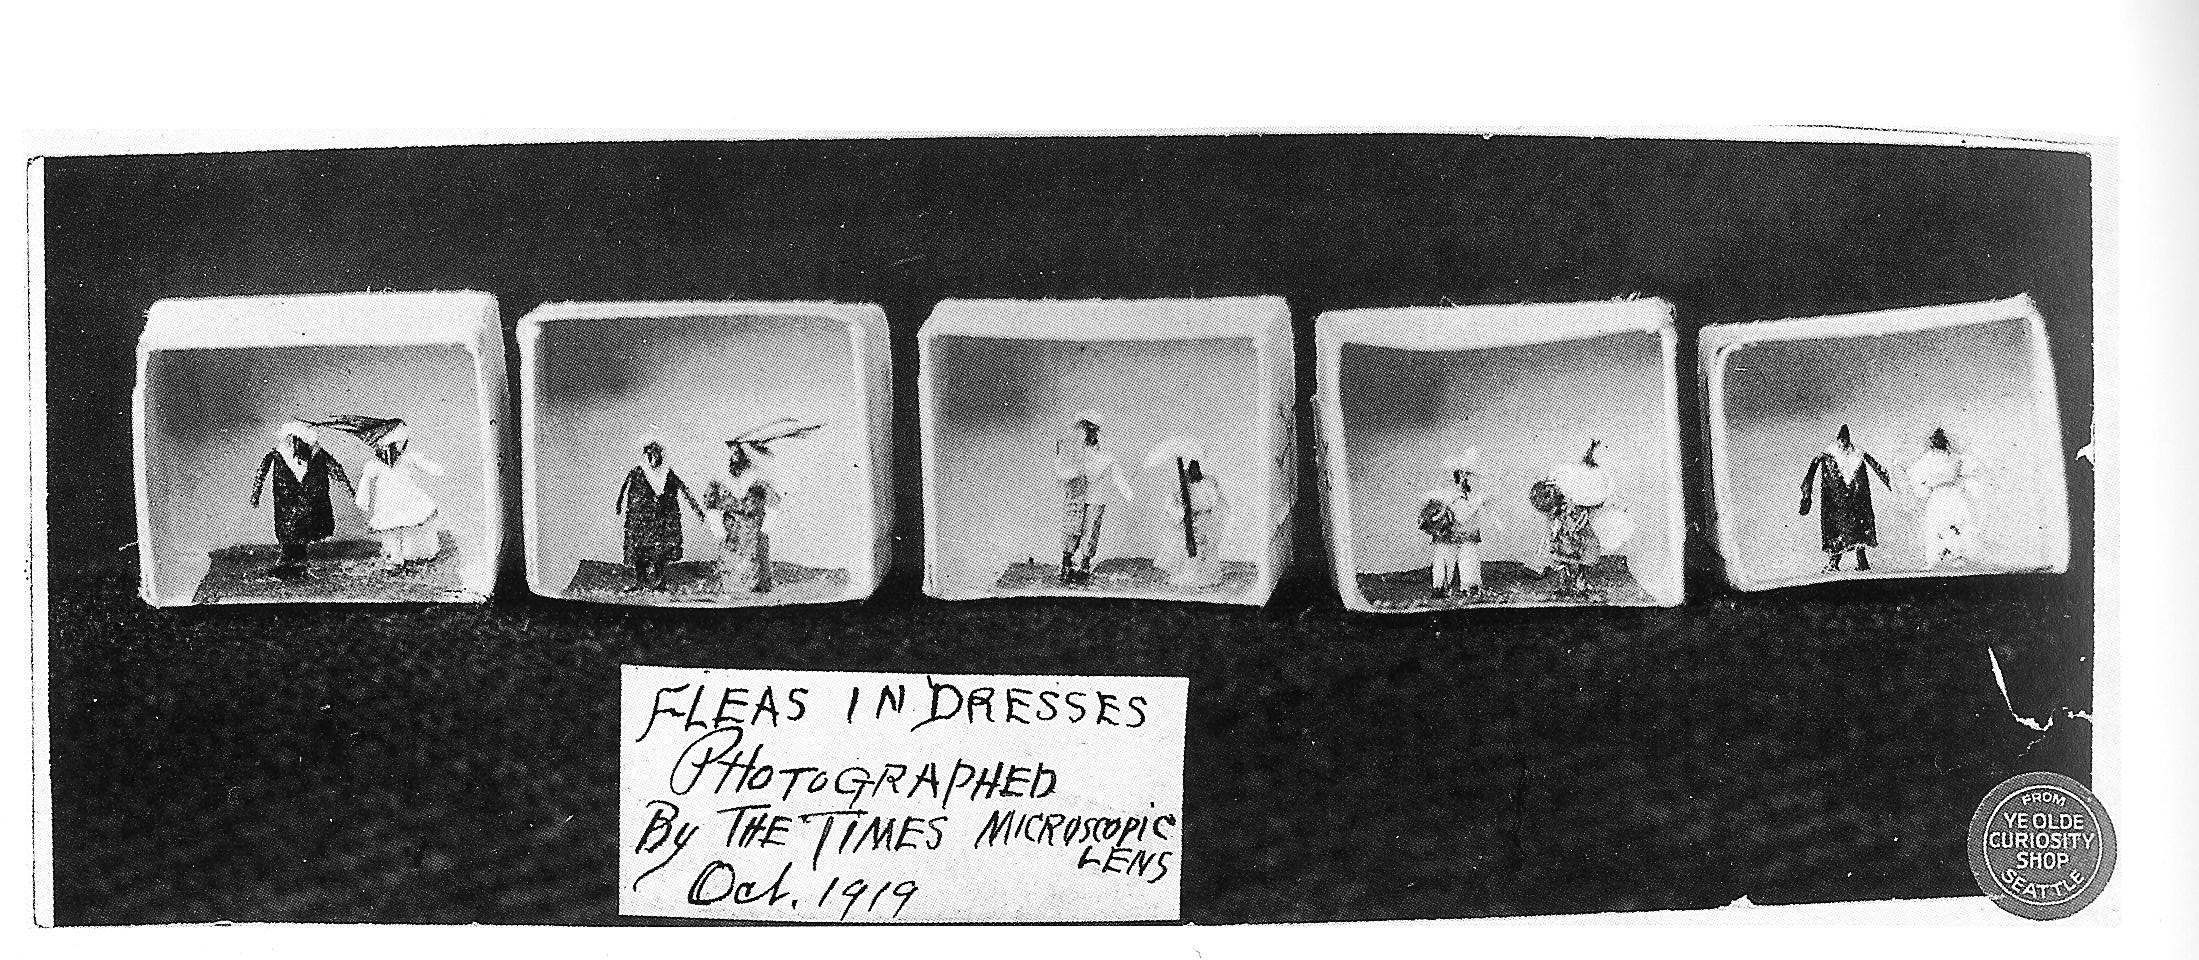 Fleas in Dresses: Photographed by The Times